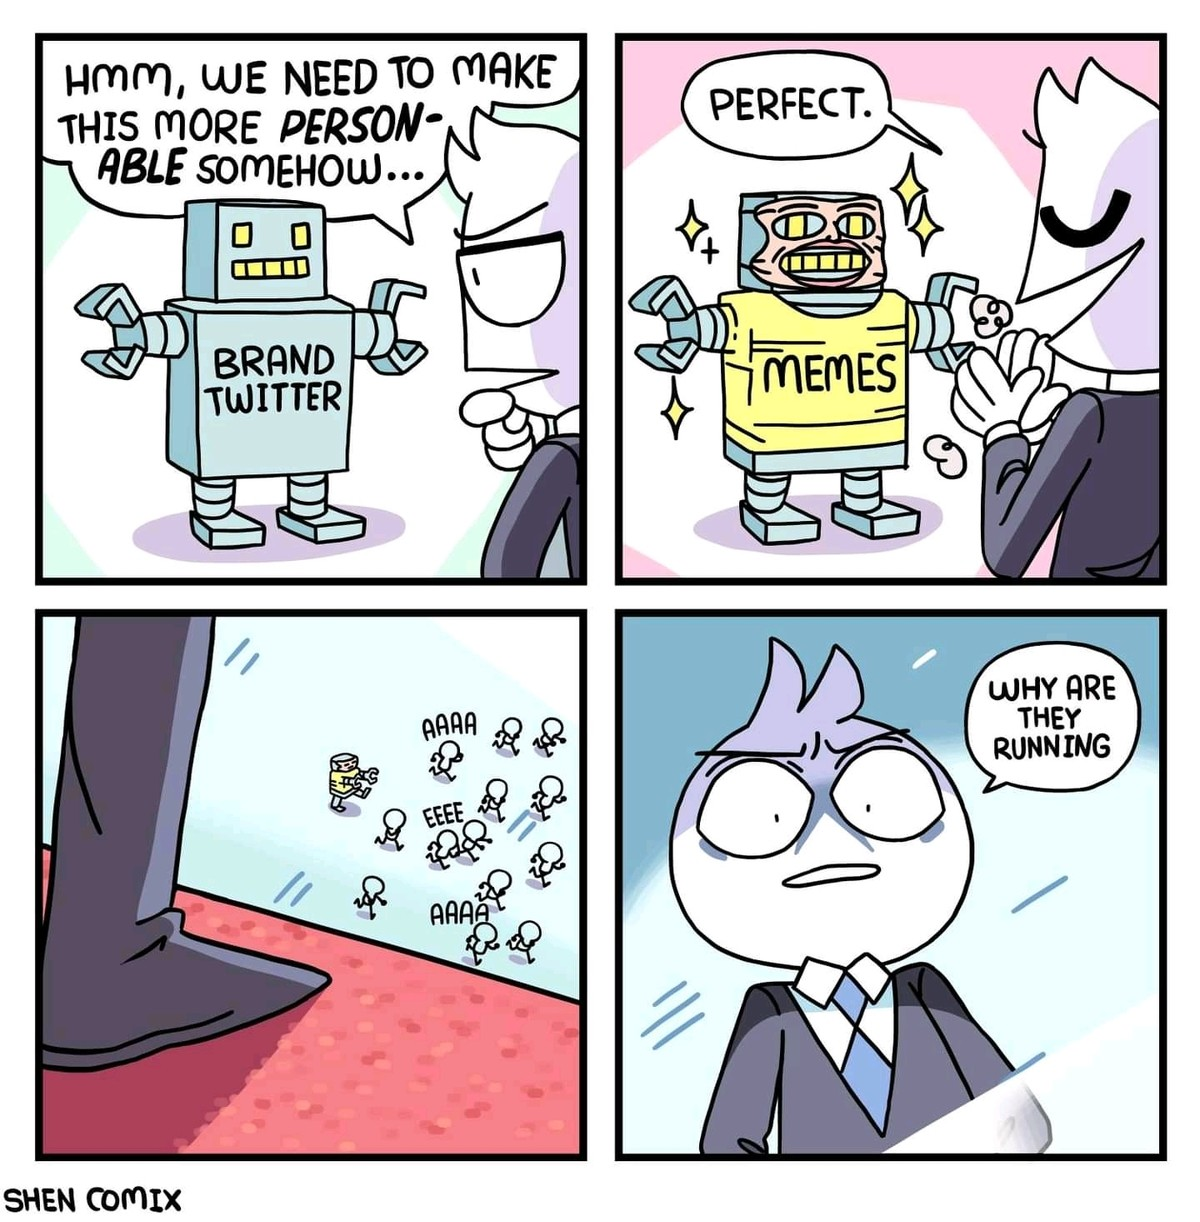 Corporate cringe. .. Idk you bunch of fags seem to love brand twitter. Especially that unfunny chilis one.